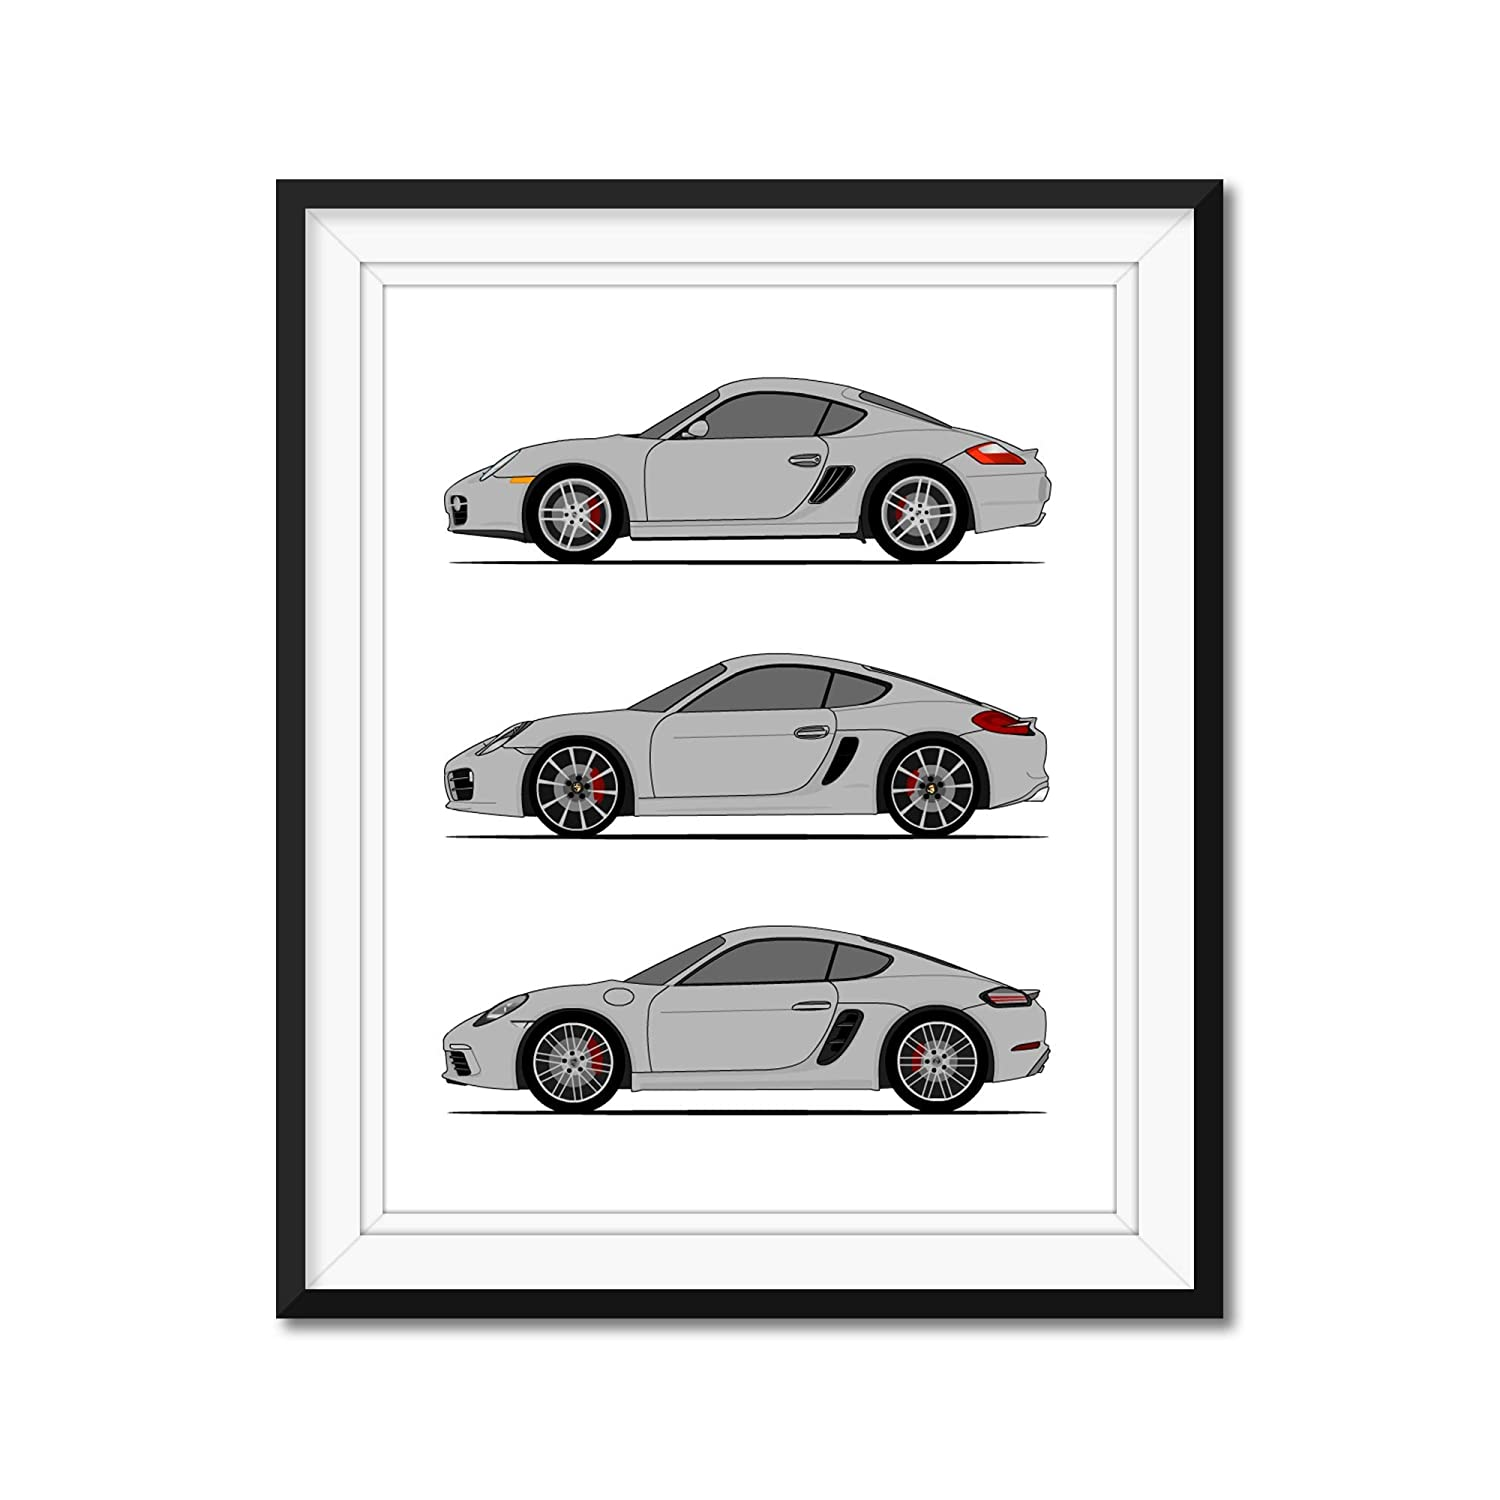 in Color Poster Inspired by Porsche Cayman Poster Print Handmade Wall Art of the History and Evolution of the Cayman Generations Car Models: 718//981// 987